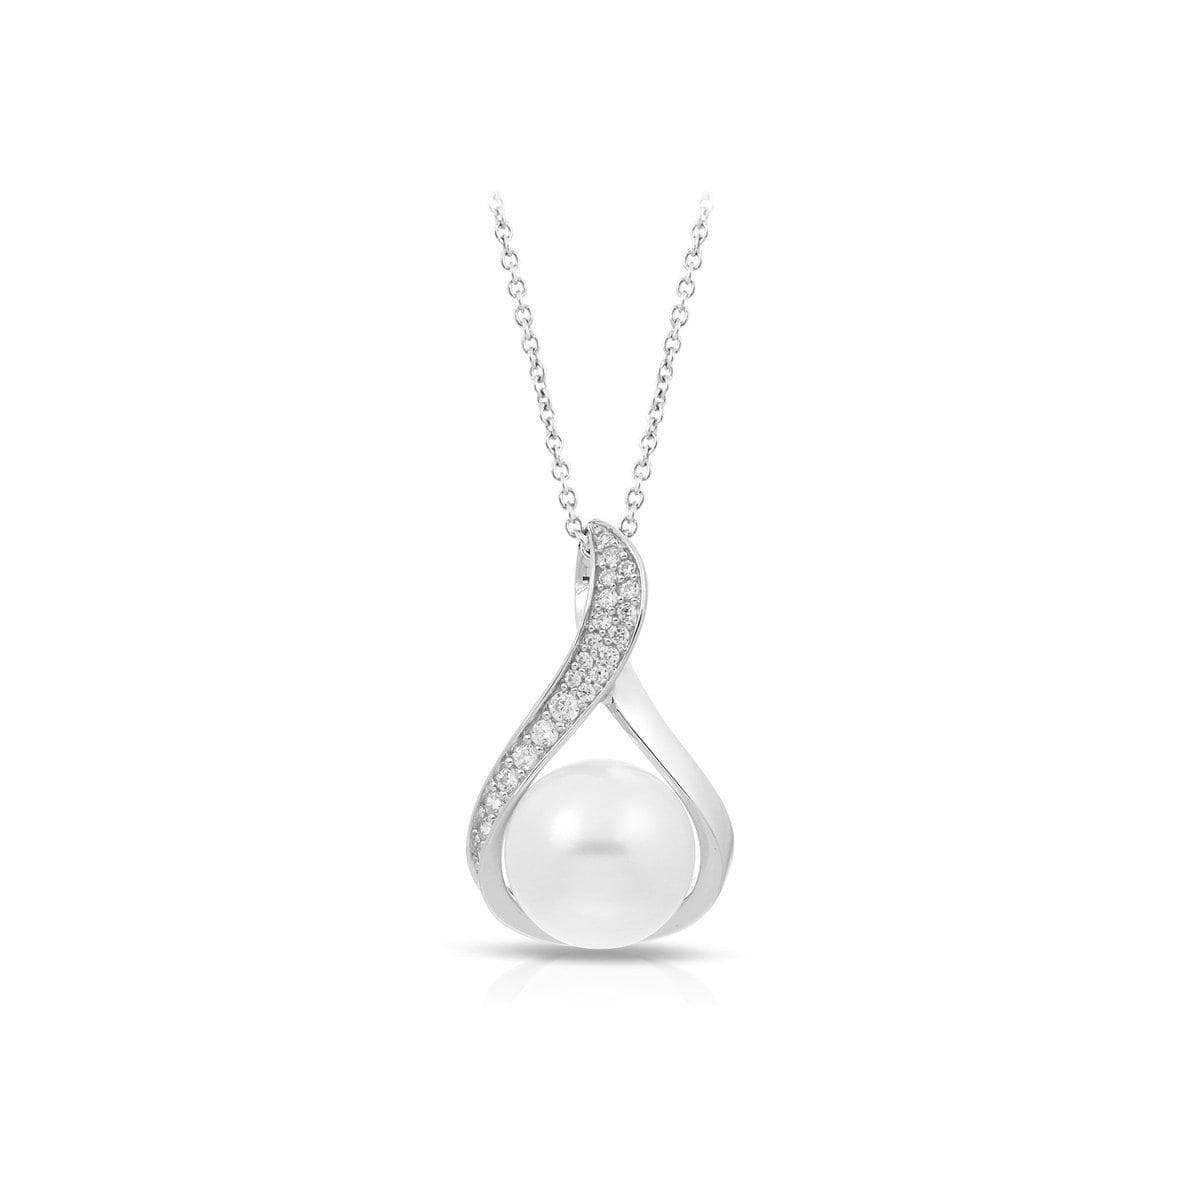 Liliana White Pendant